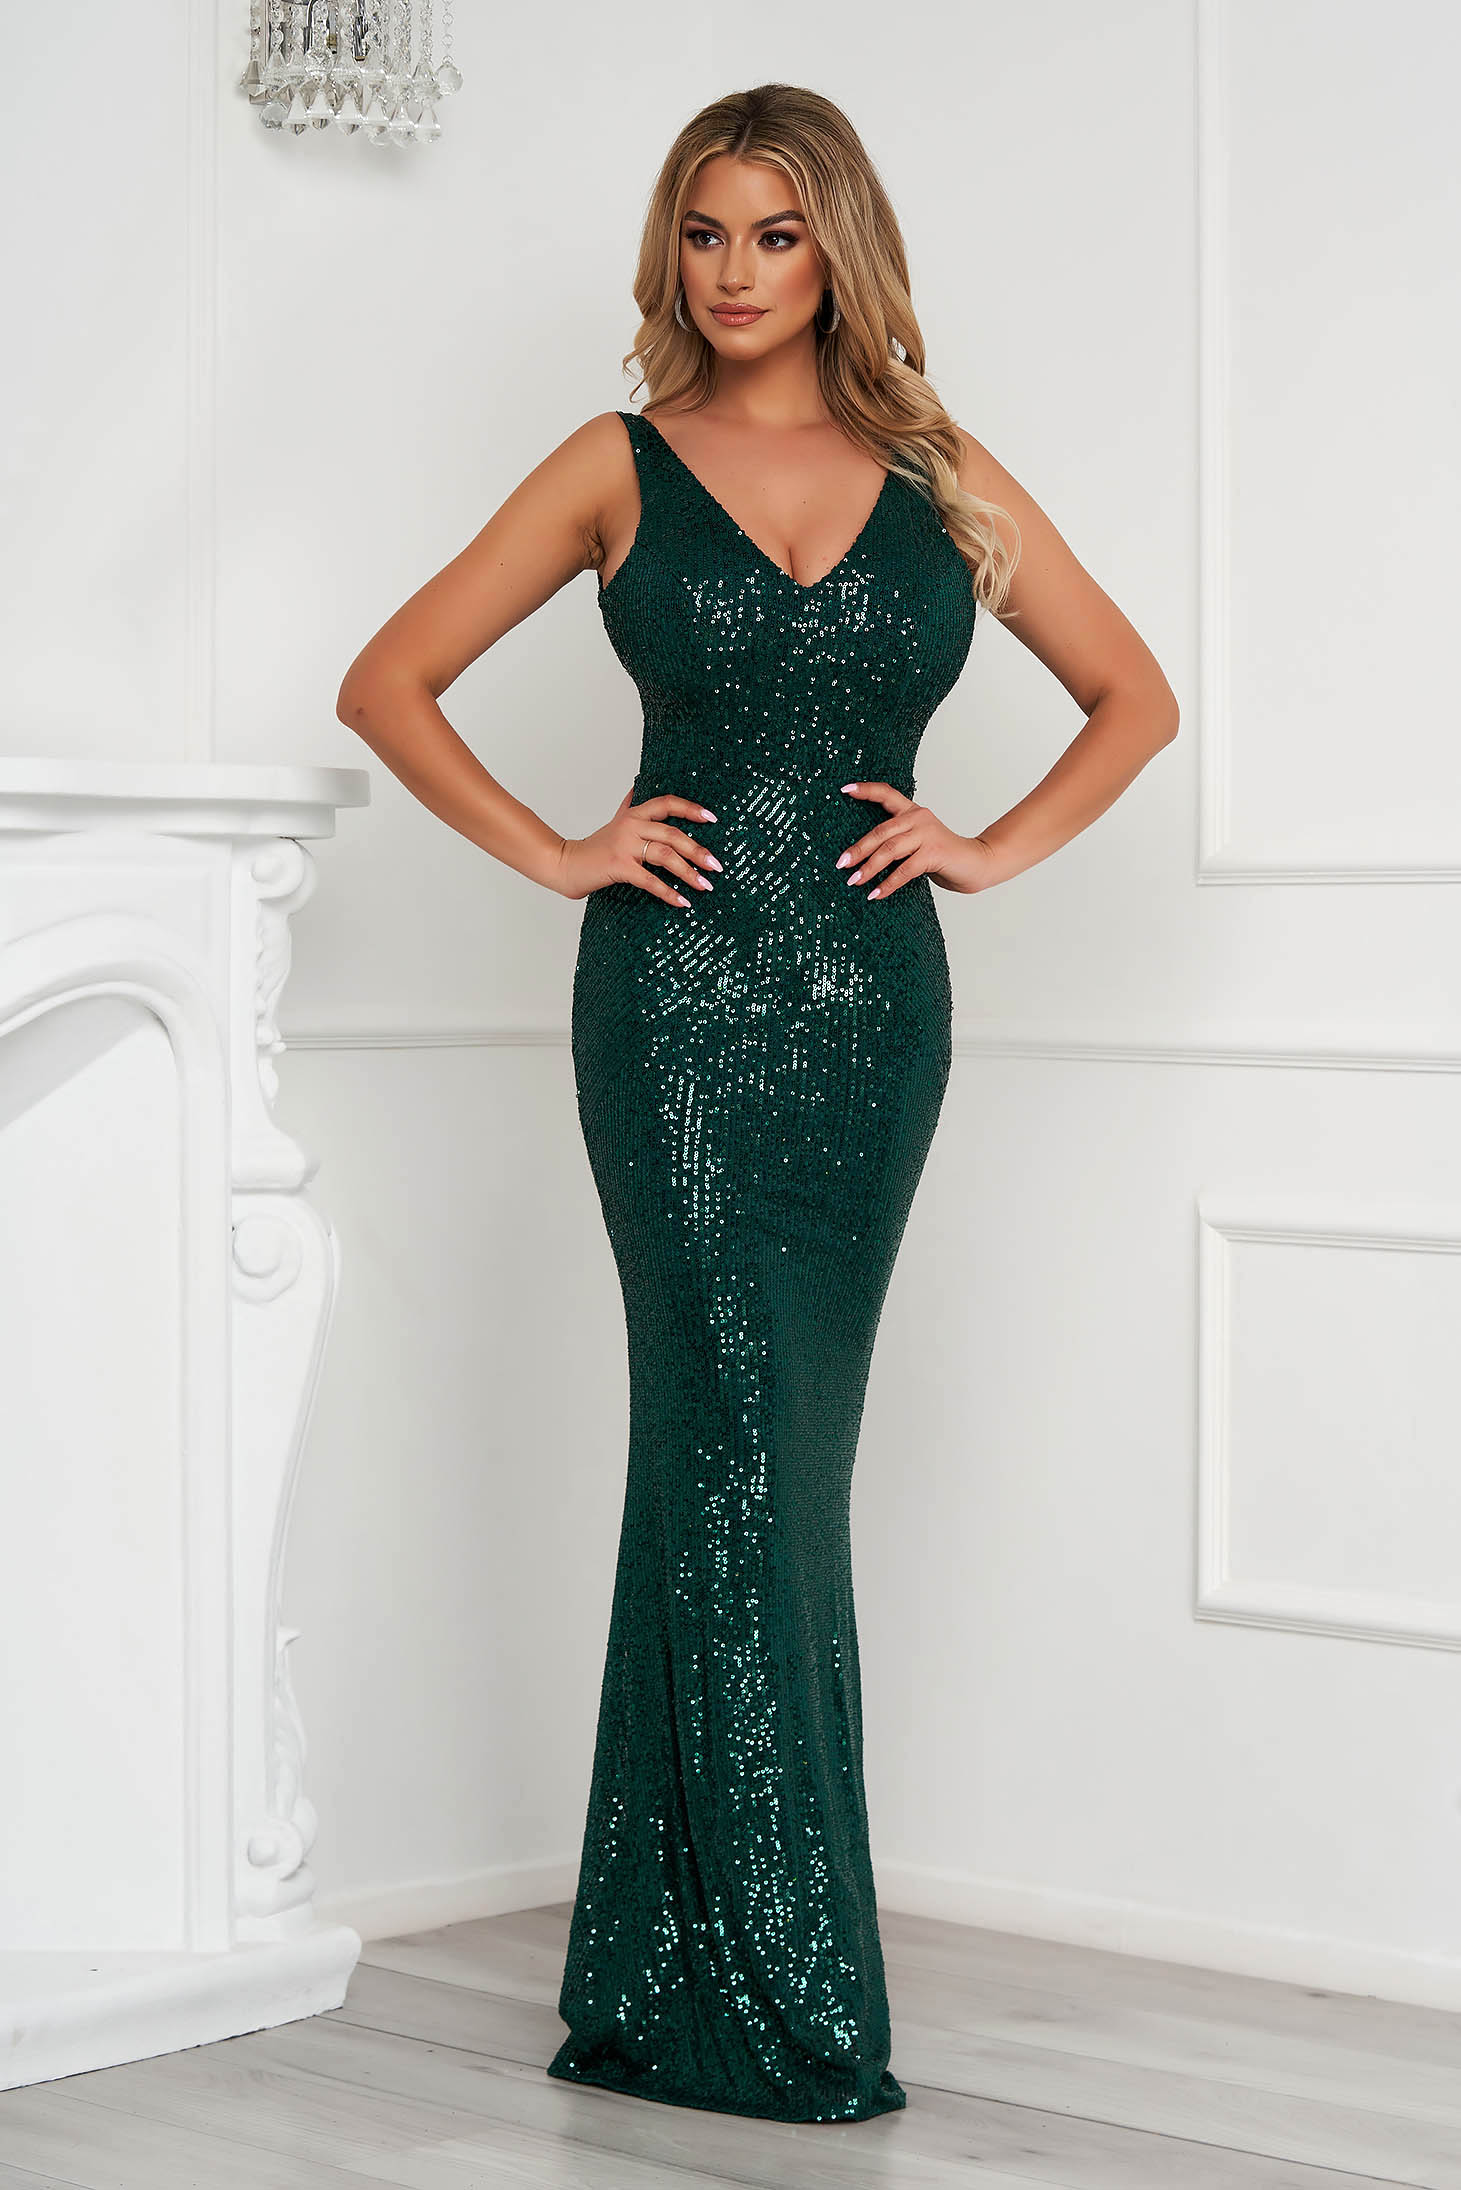 Green dress long pencil occasional with sequins sleeveless